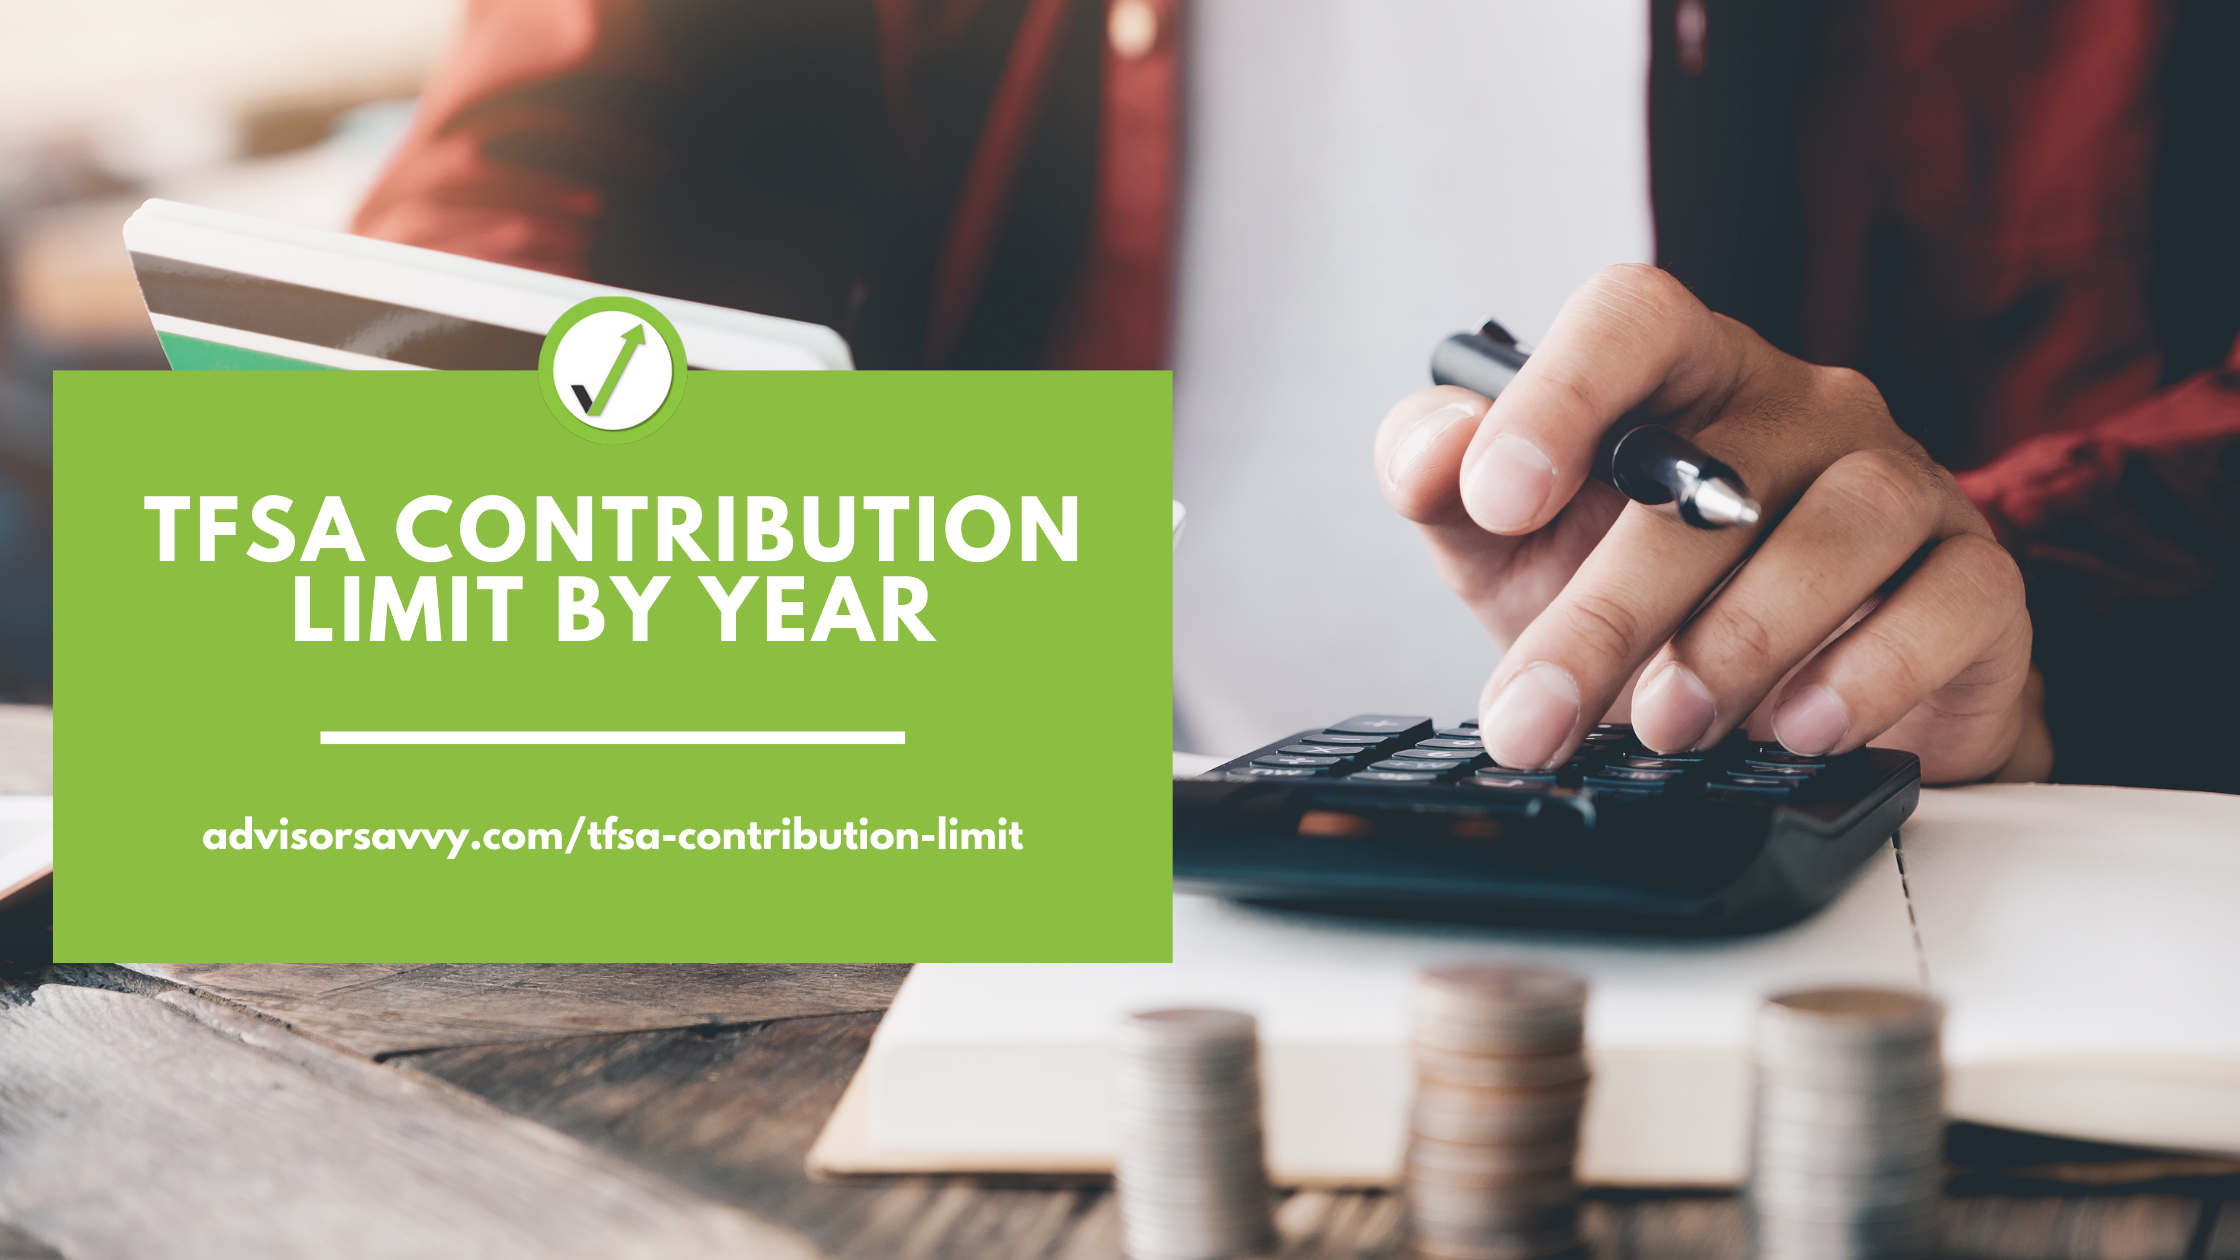 TFSA Contribution Limit By Year